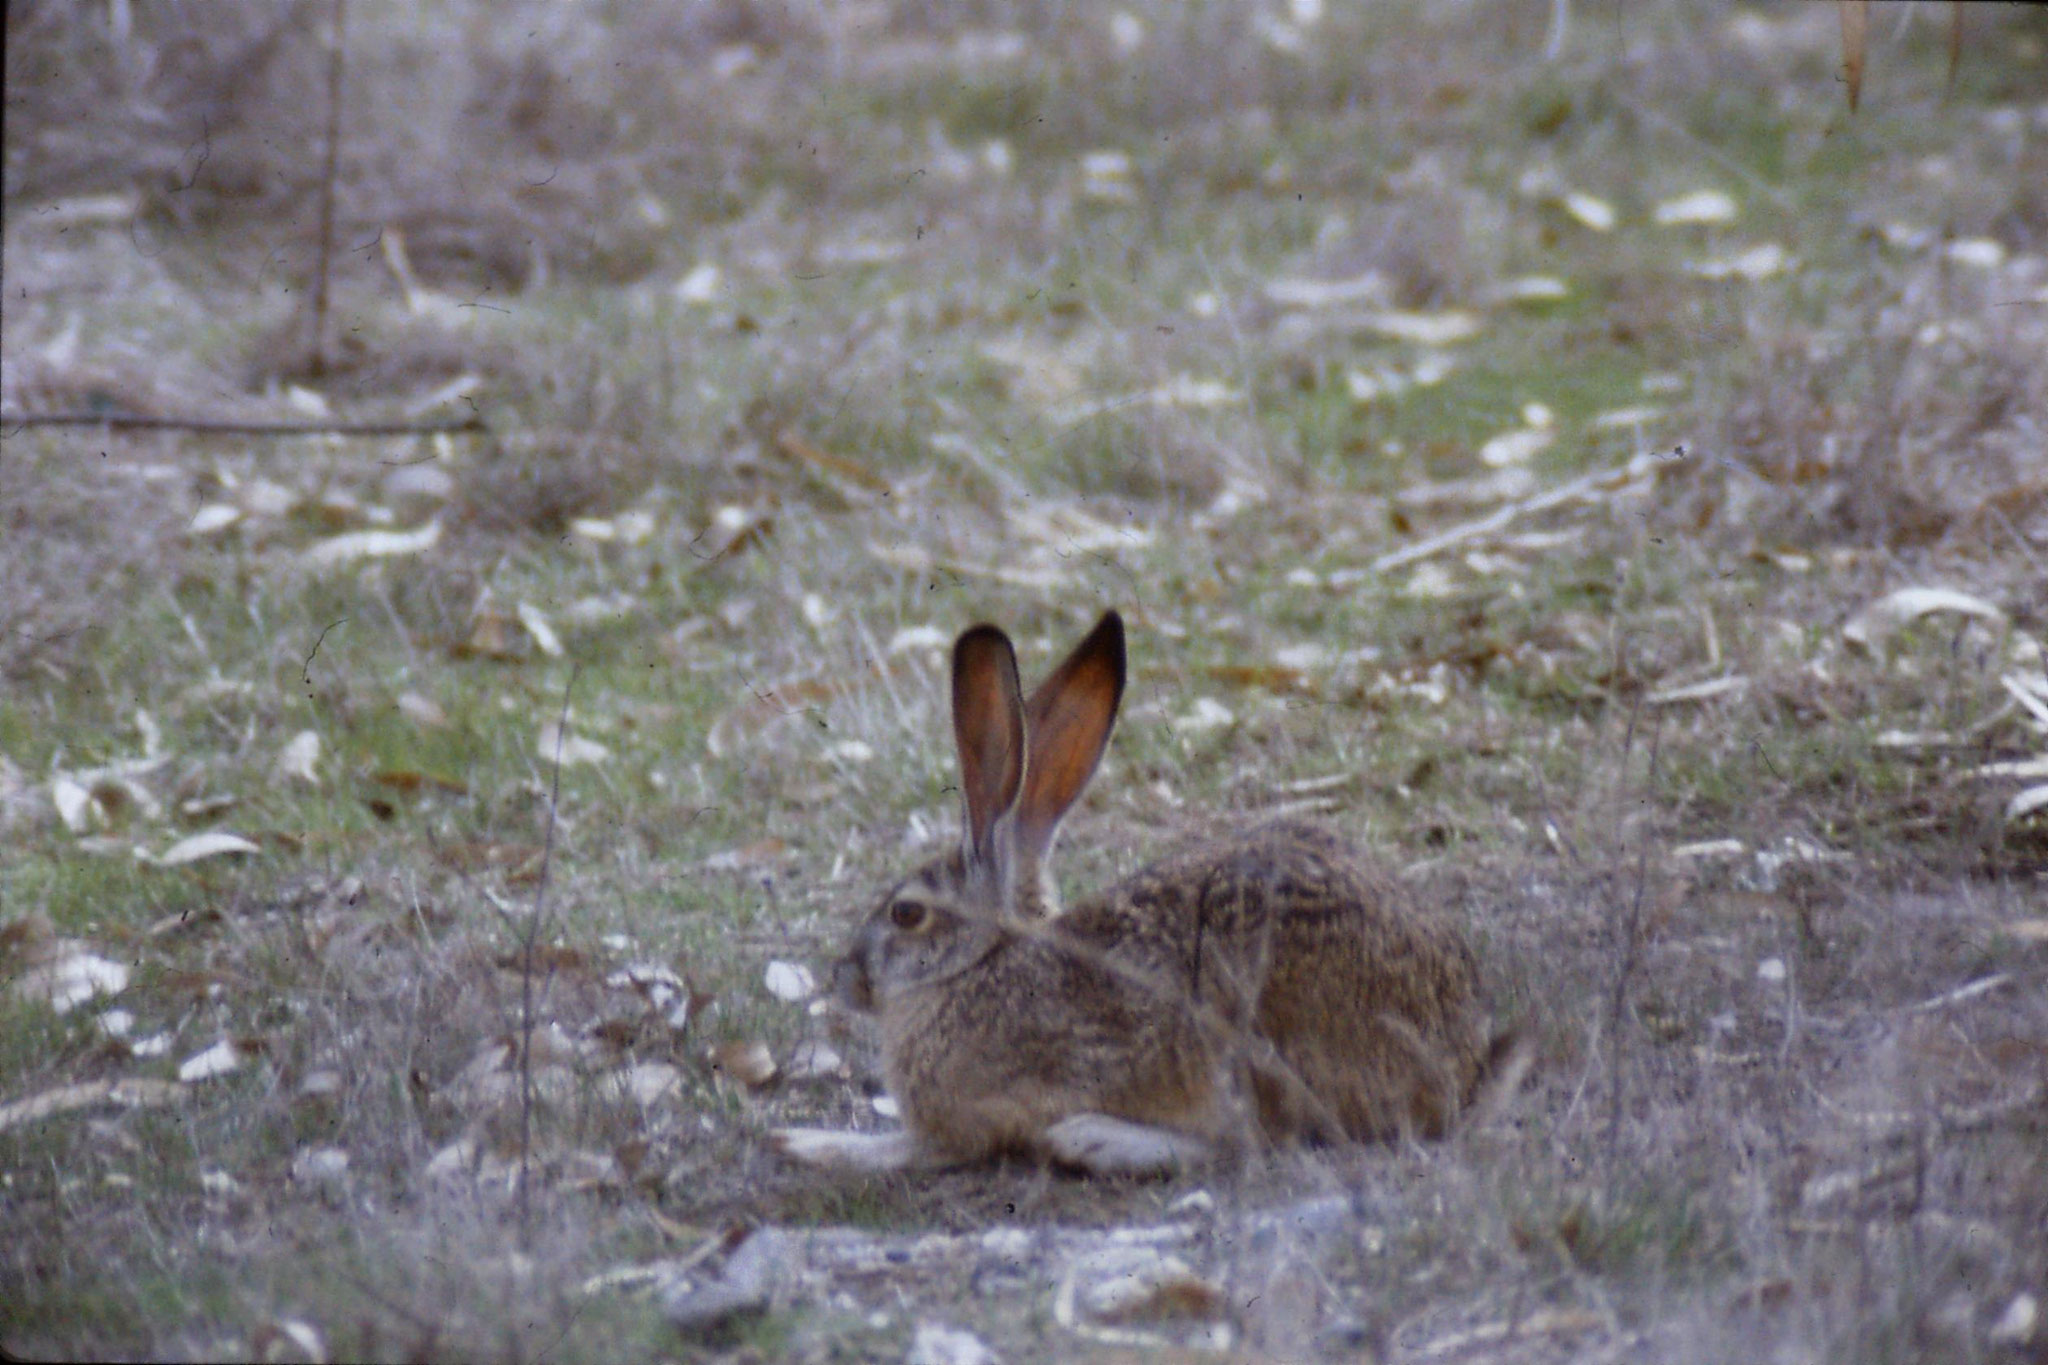 15/2/1991: 14: Sacramento NWR, Black Tailed Jack Rabbit